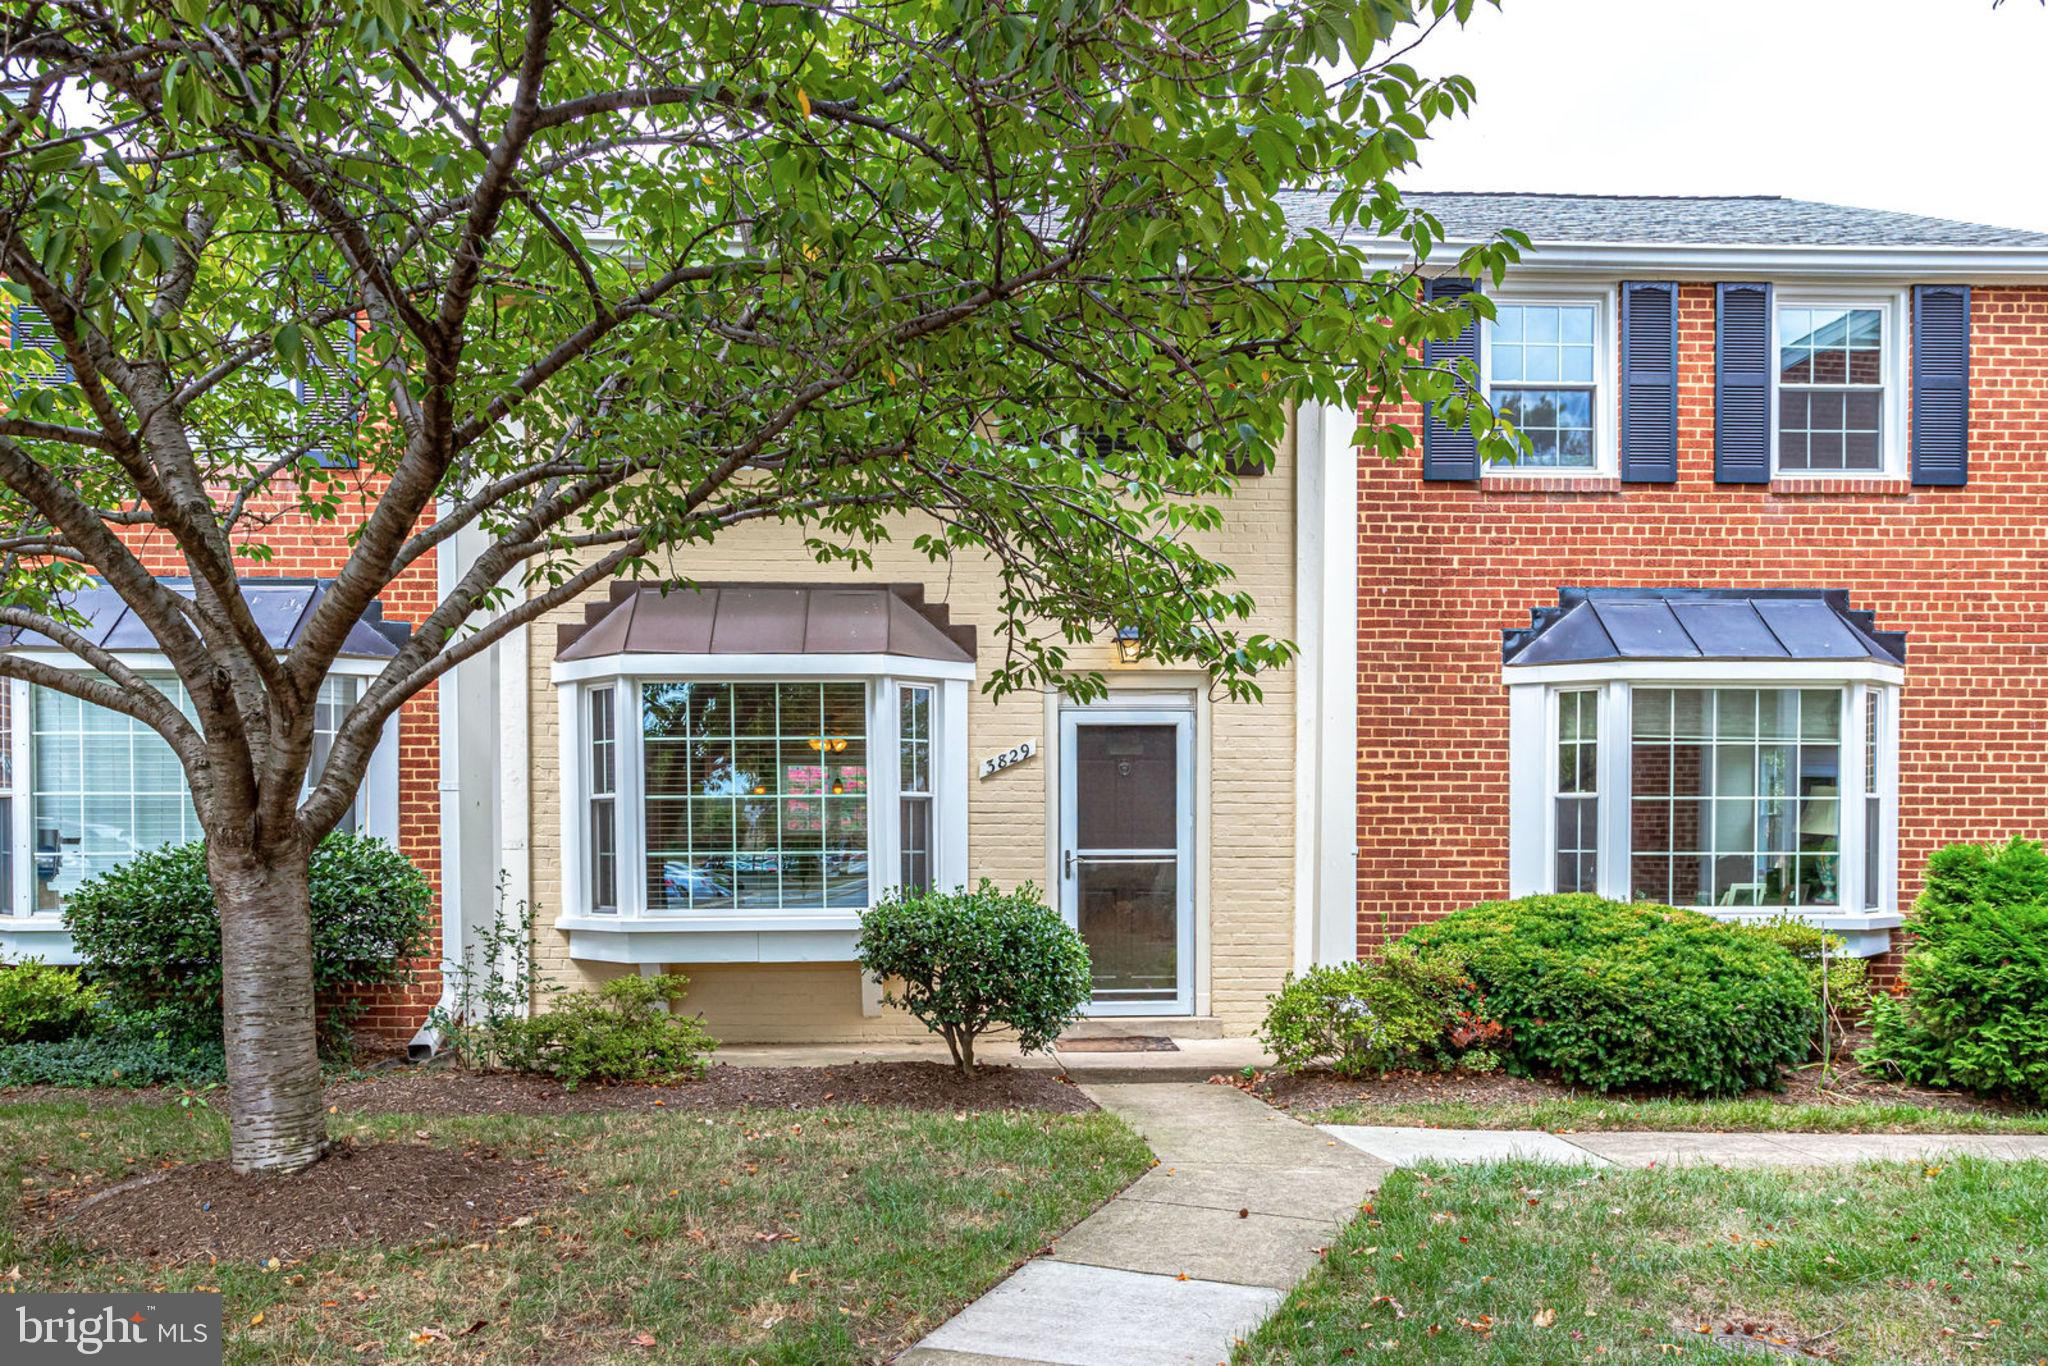 Beautiful 2 Bedroom 1.5 Bath in most sought after  Fairlington Towne with Tons of Upgrades. New Windows, New Floors, New Kitchen with Granite, New Appliances, New Bathrooms and Floors, Fresh Paint, Nest Thermostat and Nest Smoke/Carbon Monoxide alarm, New HVAC Heating system. Full List of UPGRADES in Documents Section. Sellers Prefer ATD Title.